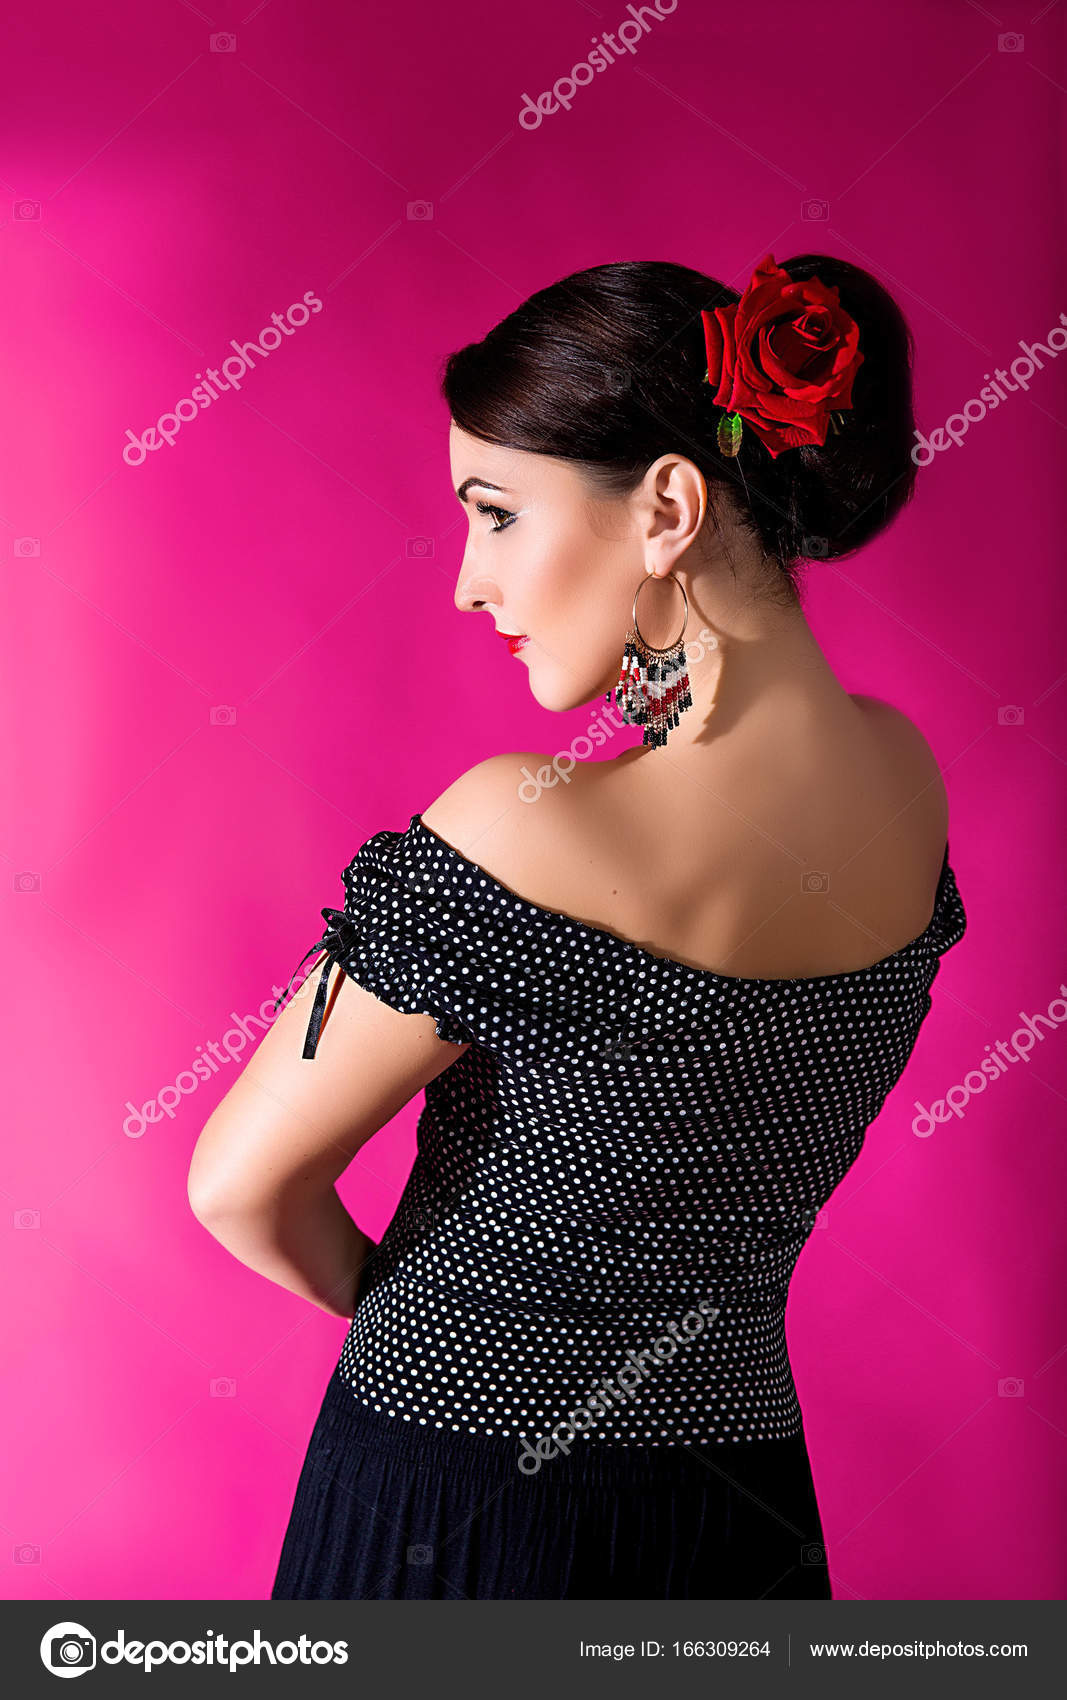 Flamenco Carmen Beautiful Woman In Black Dress With A Red Rose In